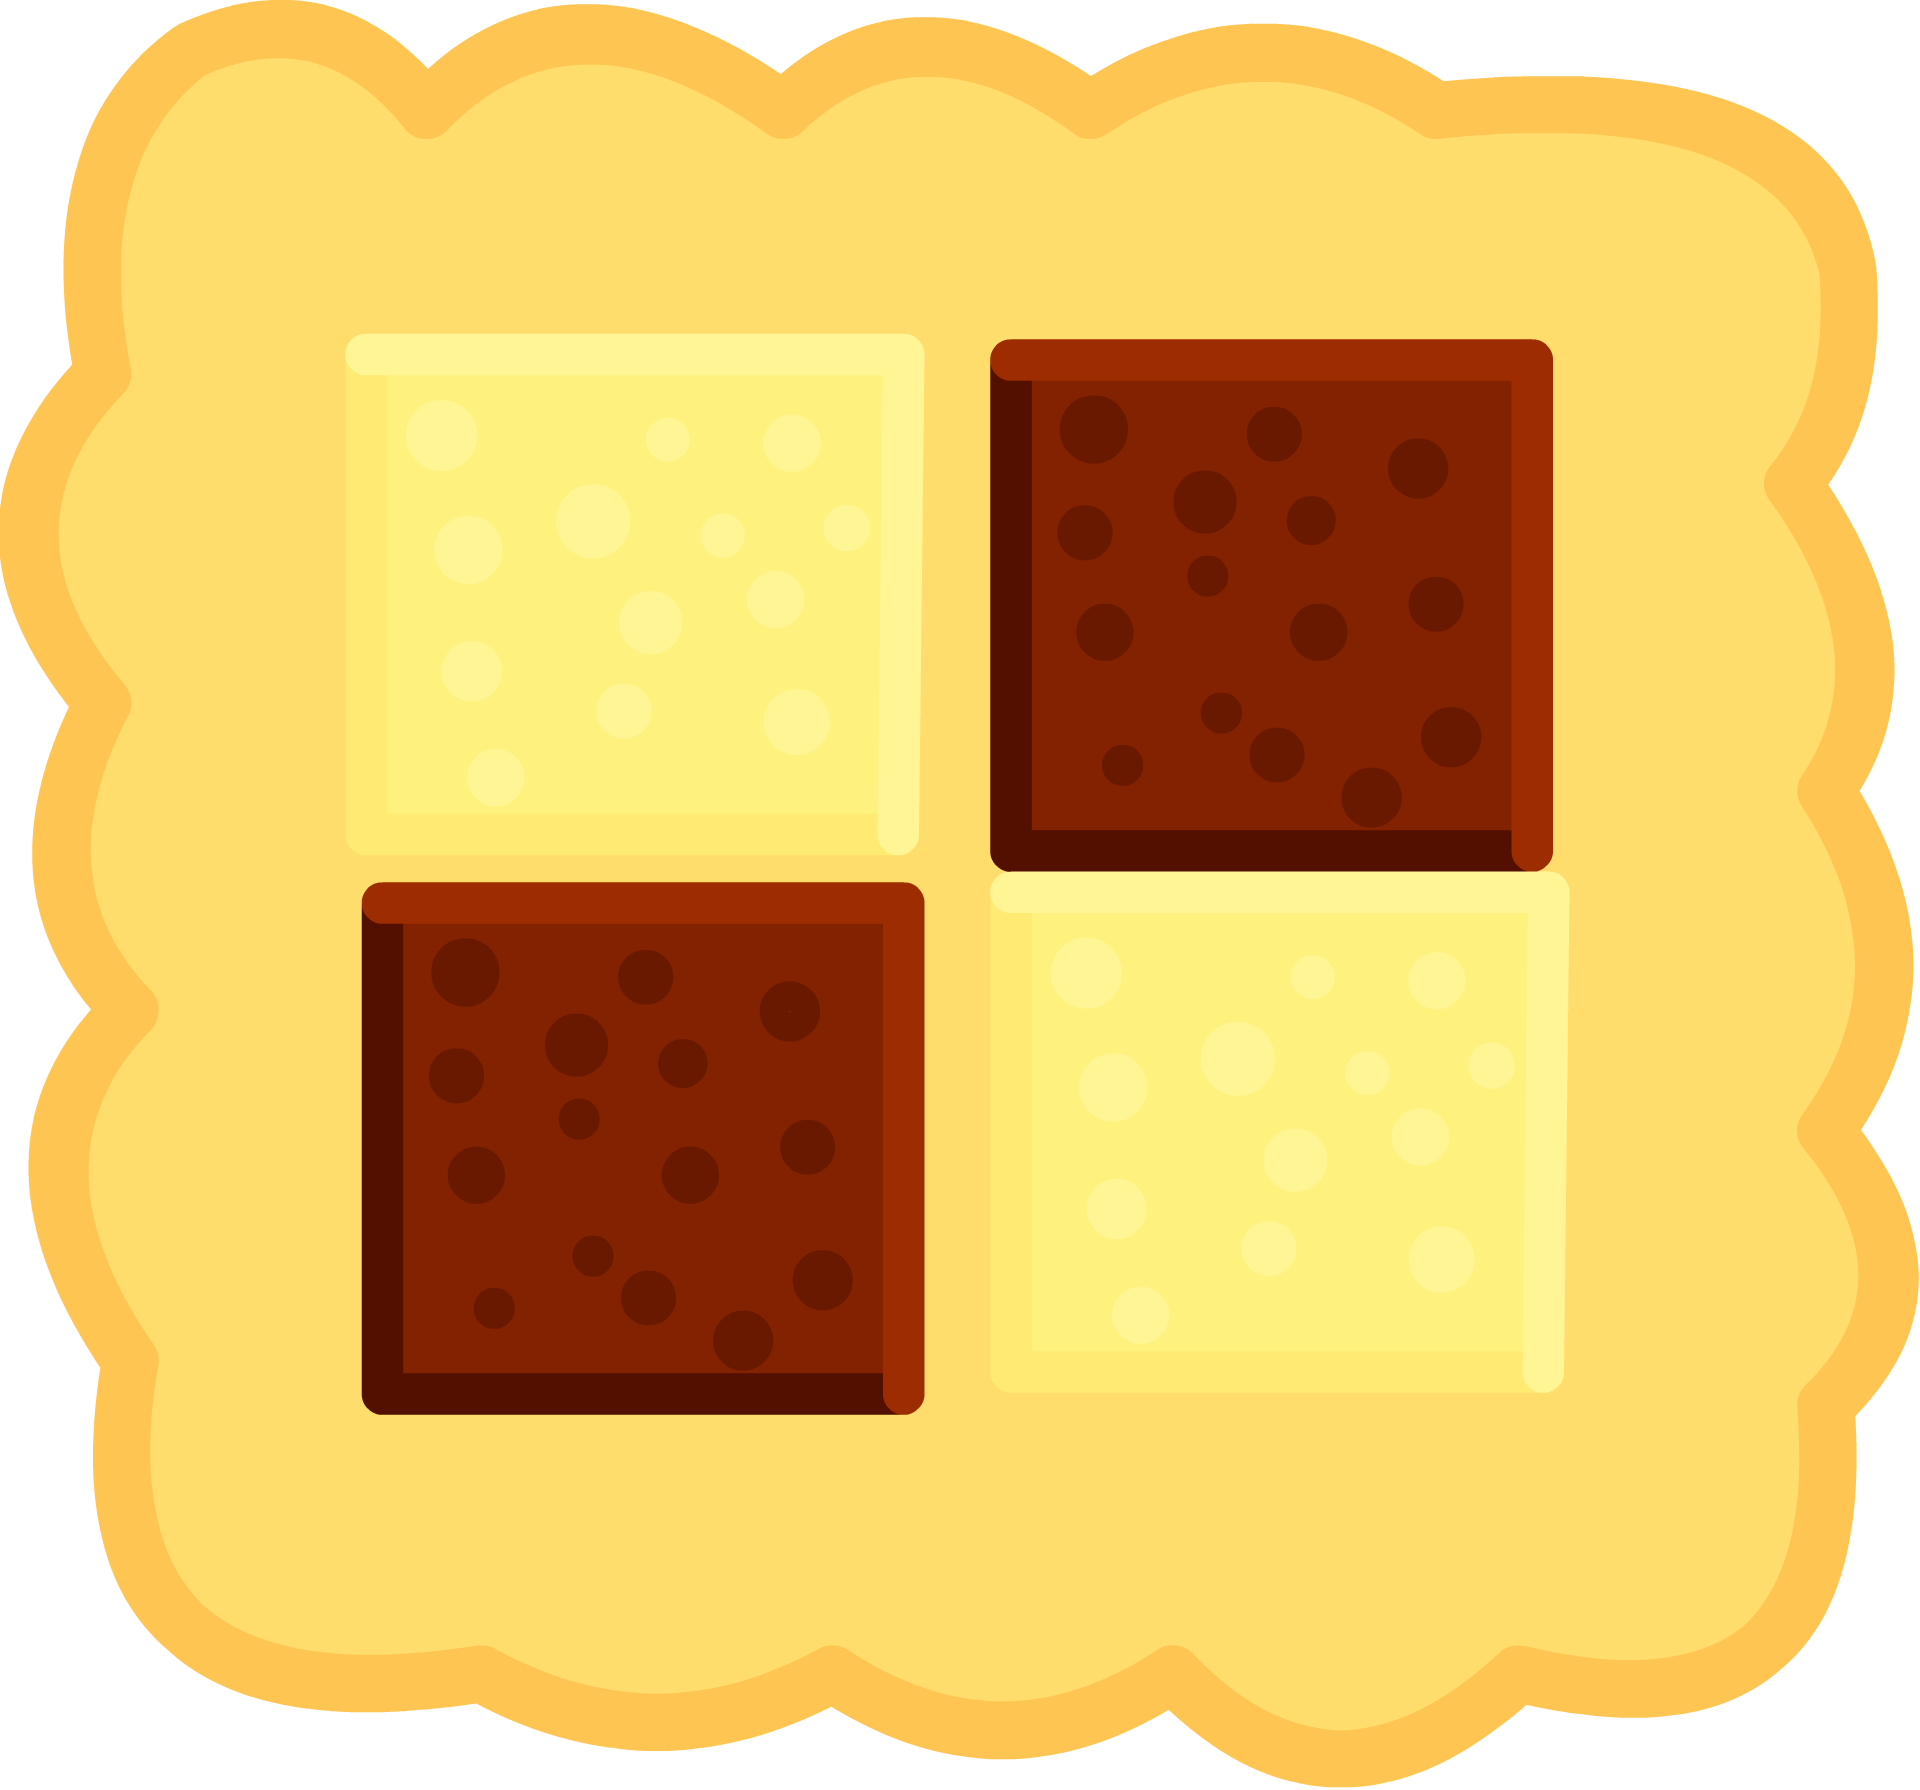 Square clipart square object. Image biscuit body om